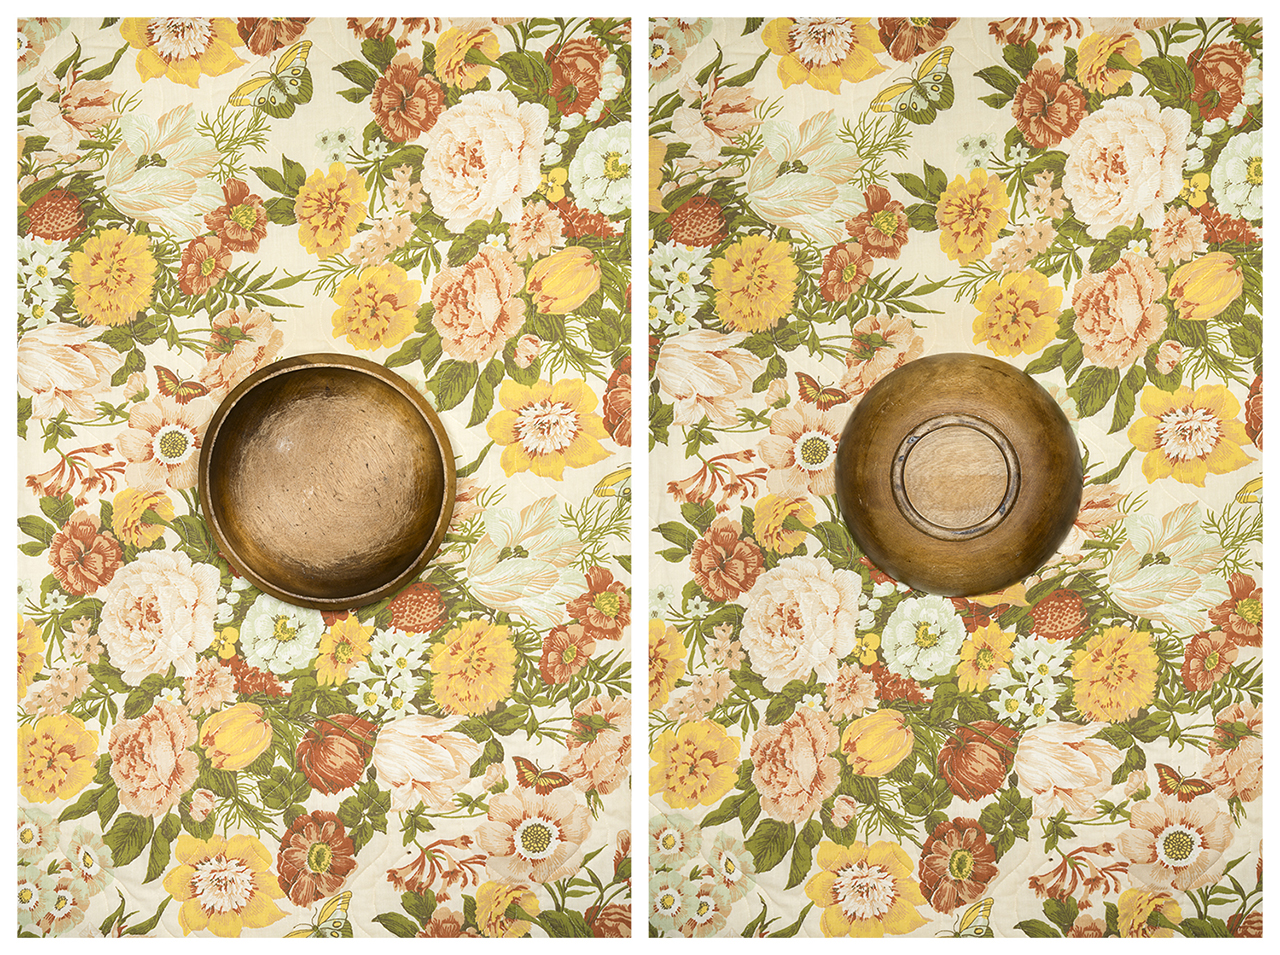 Amber Eckersley, Wooden Bowl on Floral Bedspread